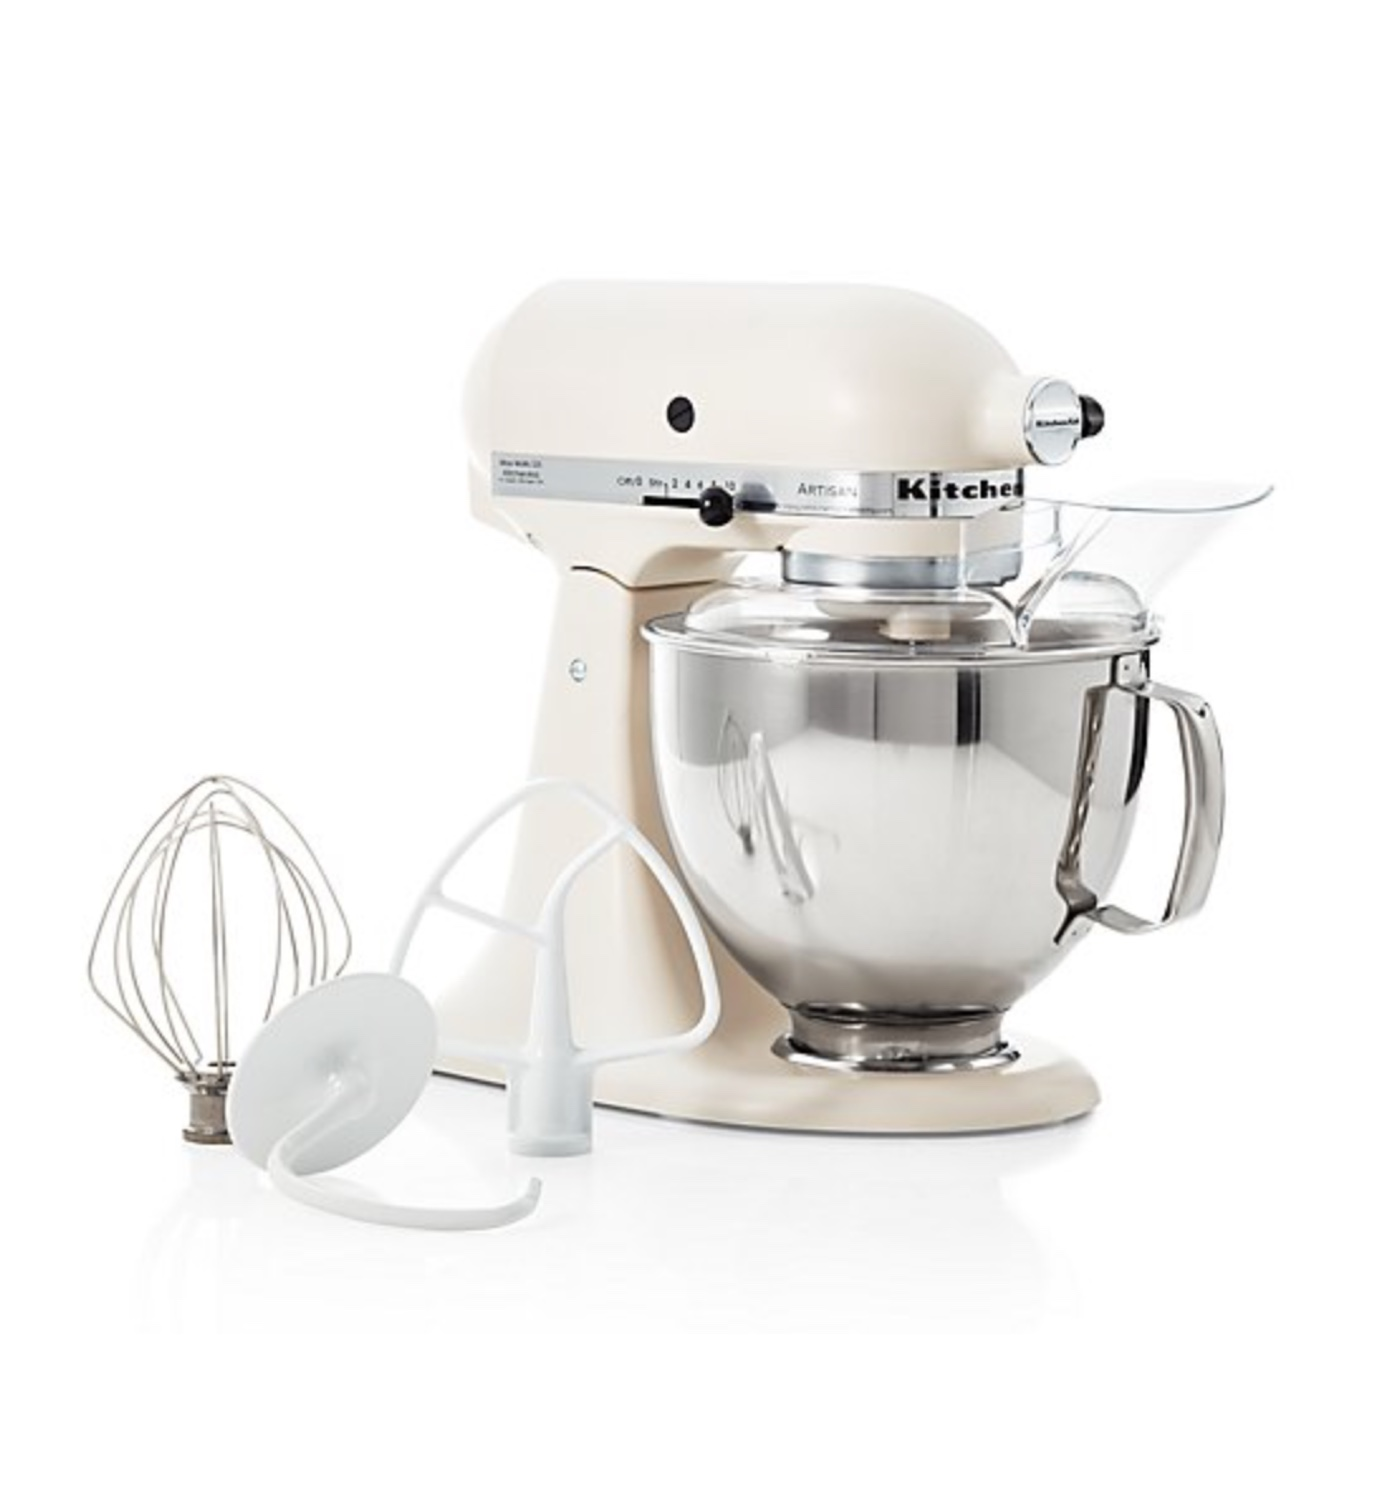 KitchenAid Artisan Matte Mixer